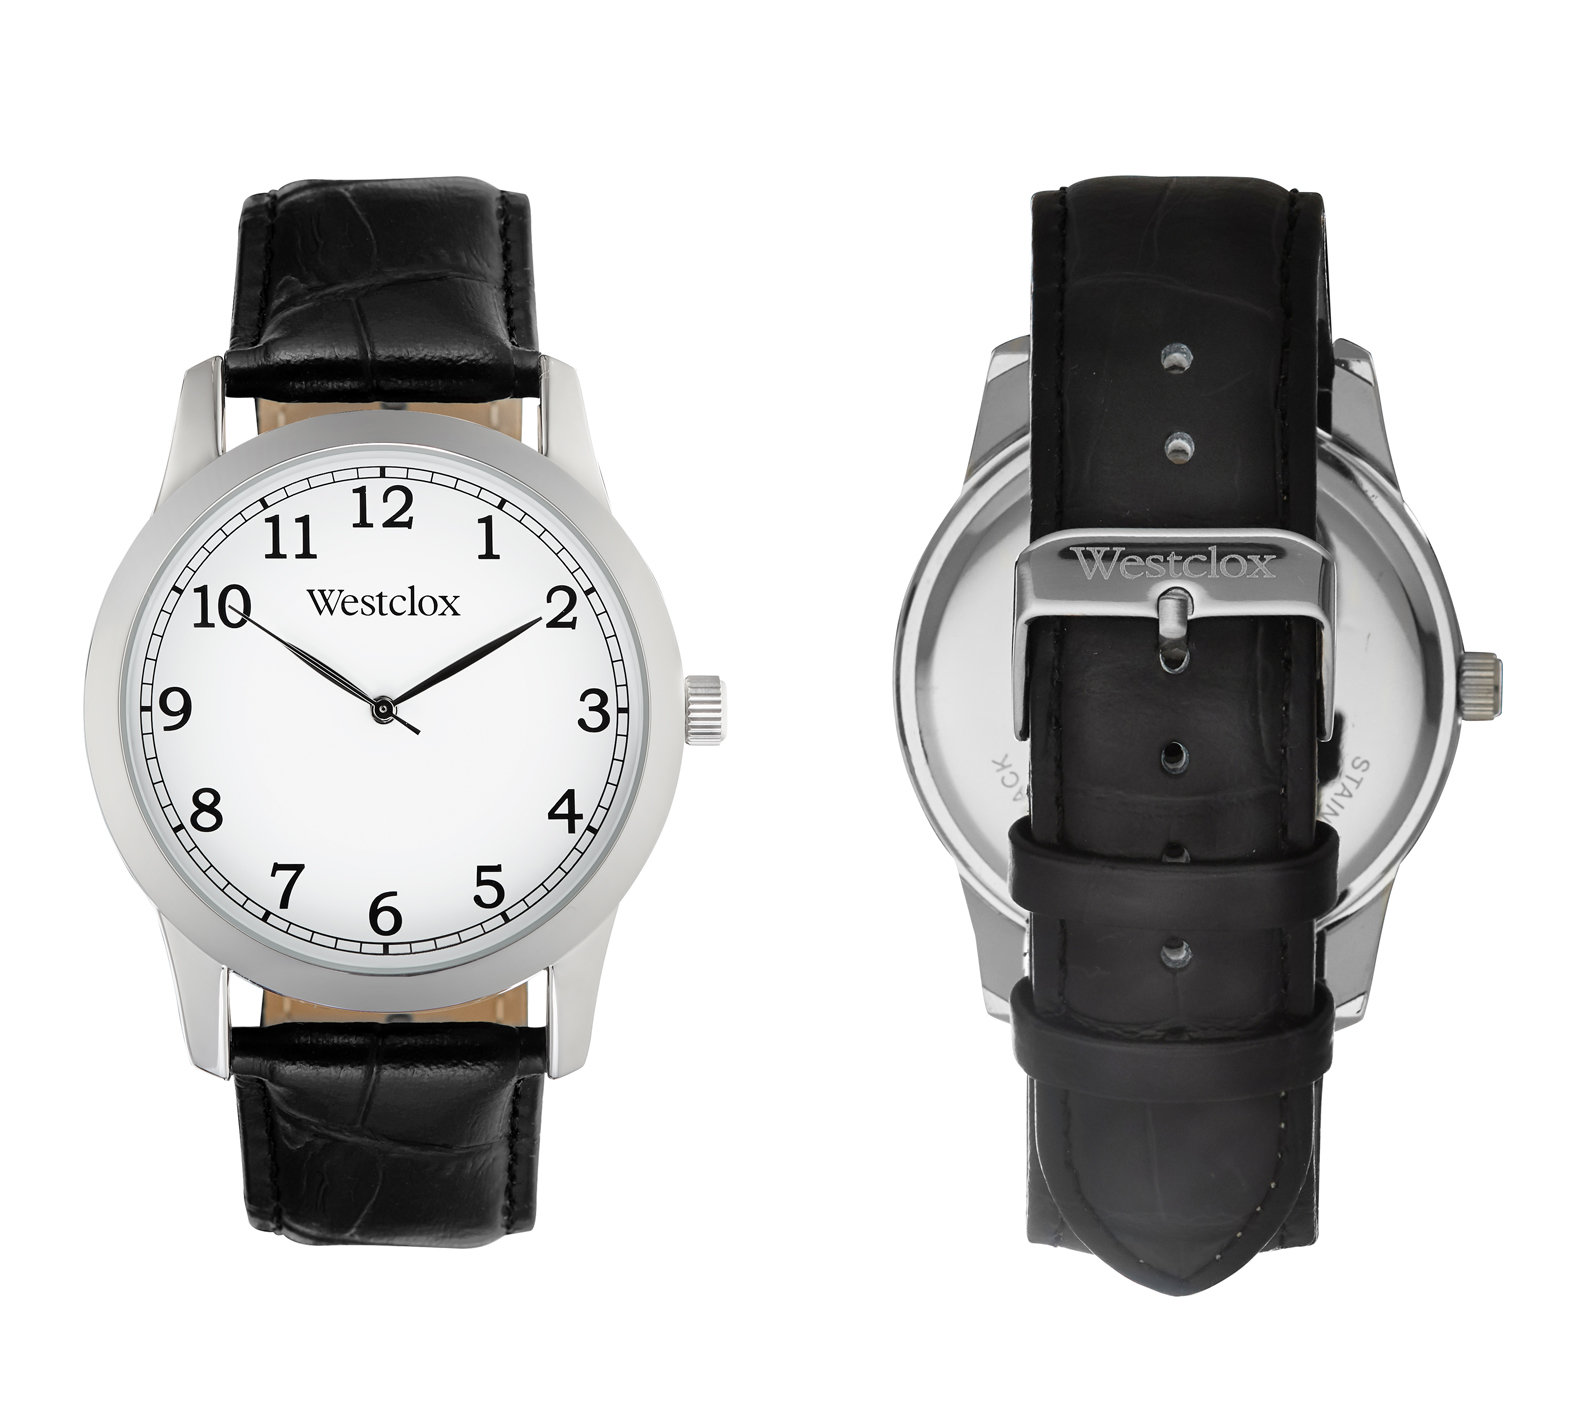 Westclox Watch with Genuine Black Leather Band and Easy to Read White Dial 51004